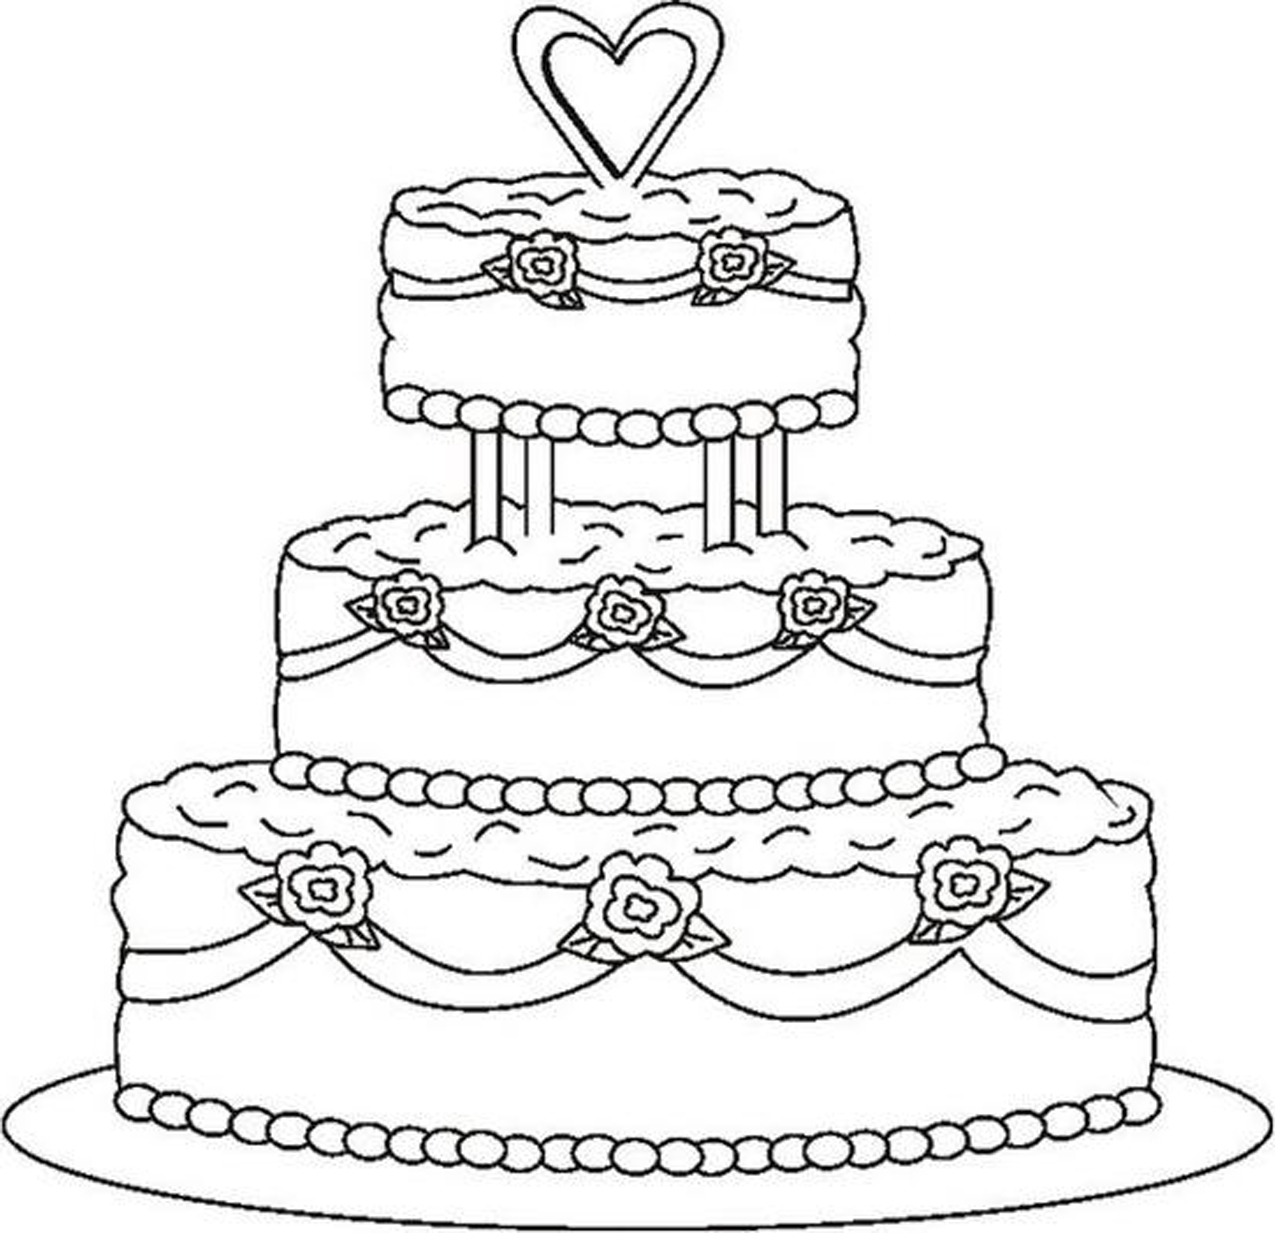 Ausmalbilder f r kinder malvorlagen und malbuch cake for Coloring pages wedding